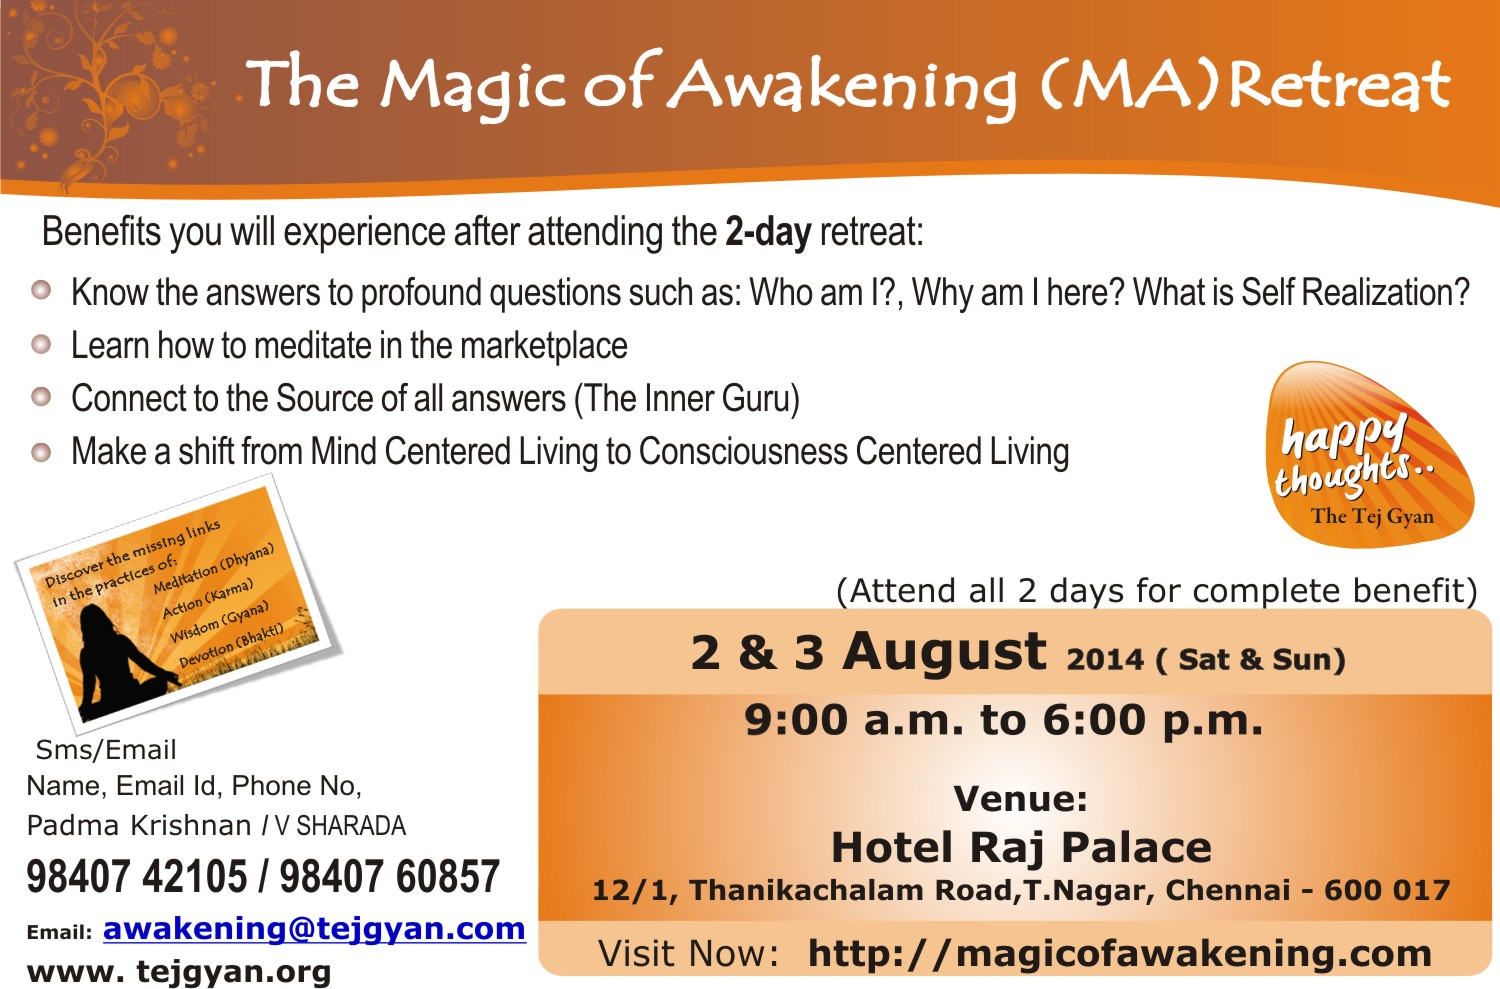 Attend 'The Magic of Awakening Retreat' in Chennai